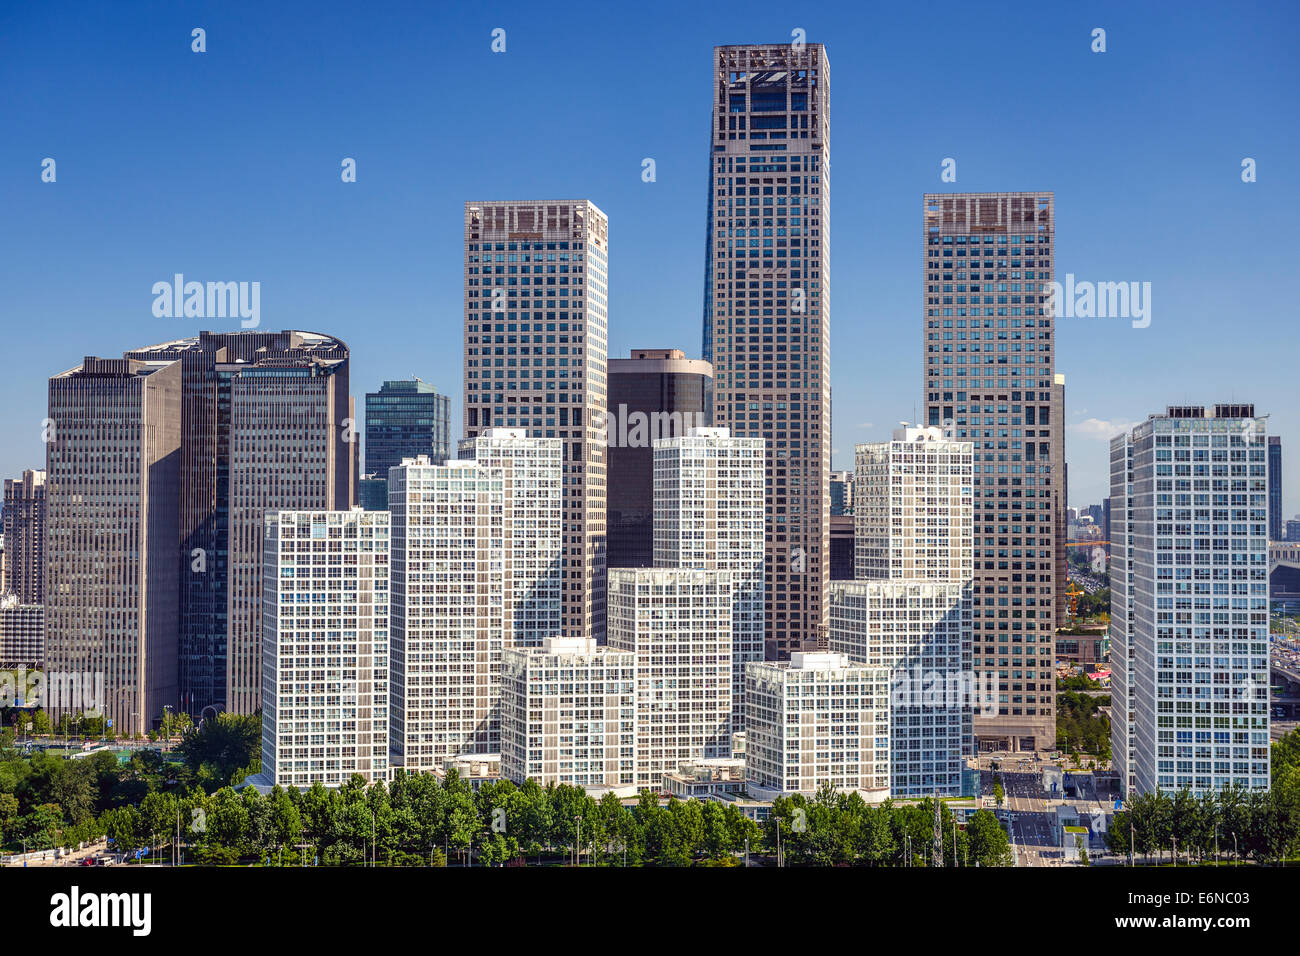 Bejing, China CBD Skyline der Stadt. Stockbild